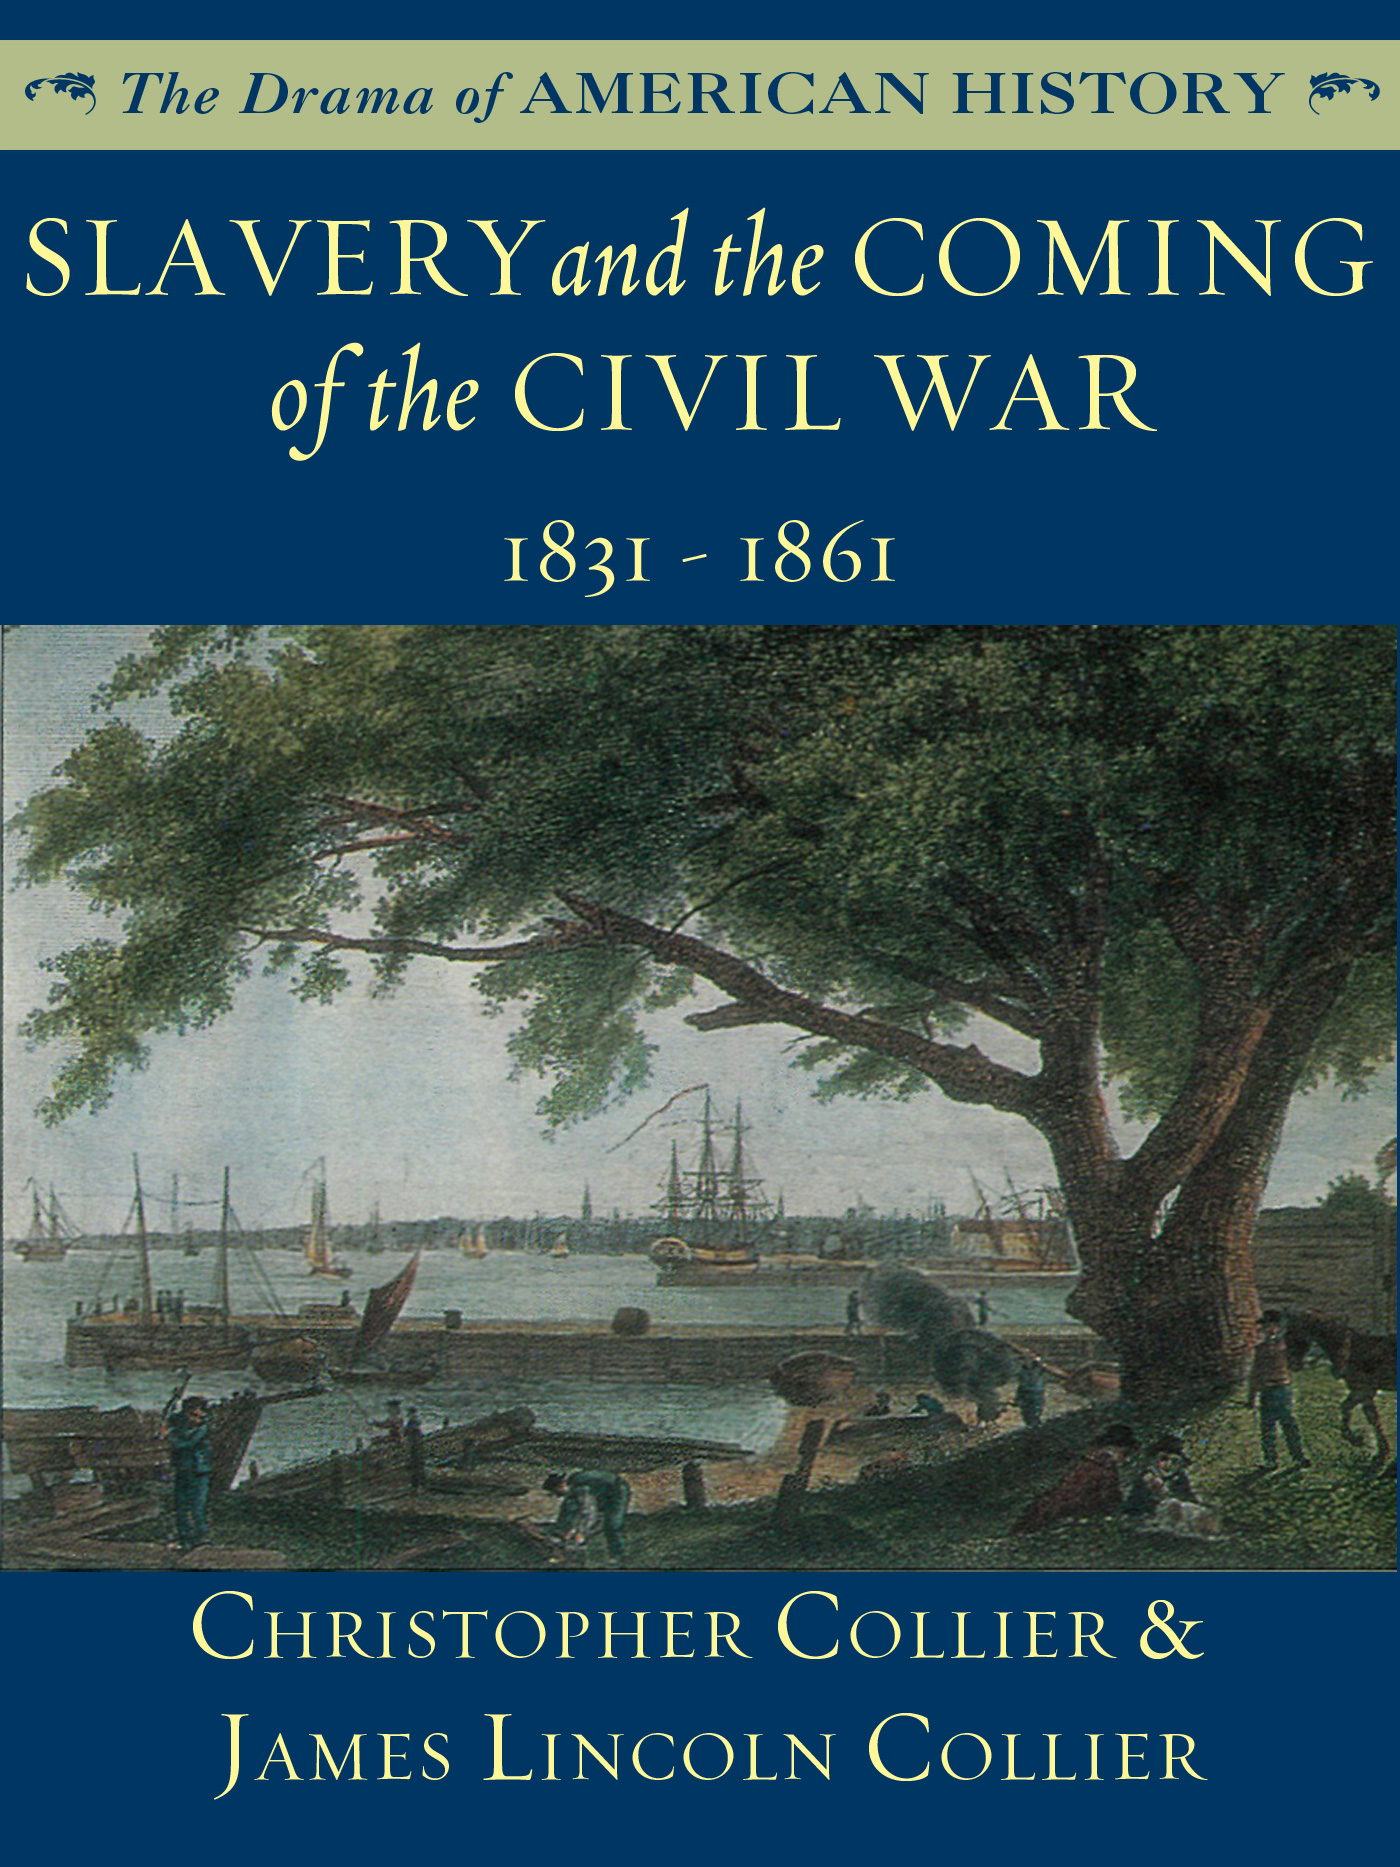 Slavery and the Coming of the Civil War: 1831 - 1861